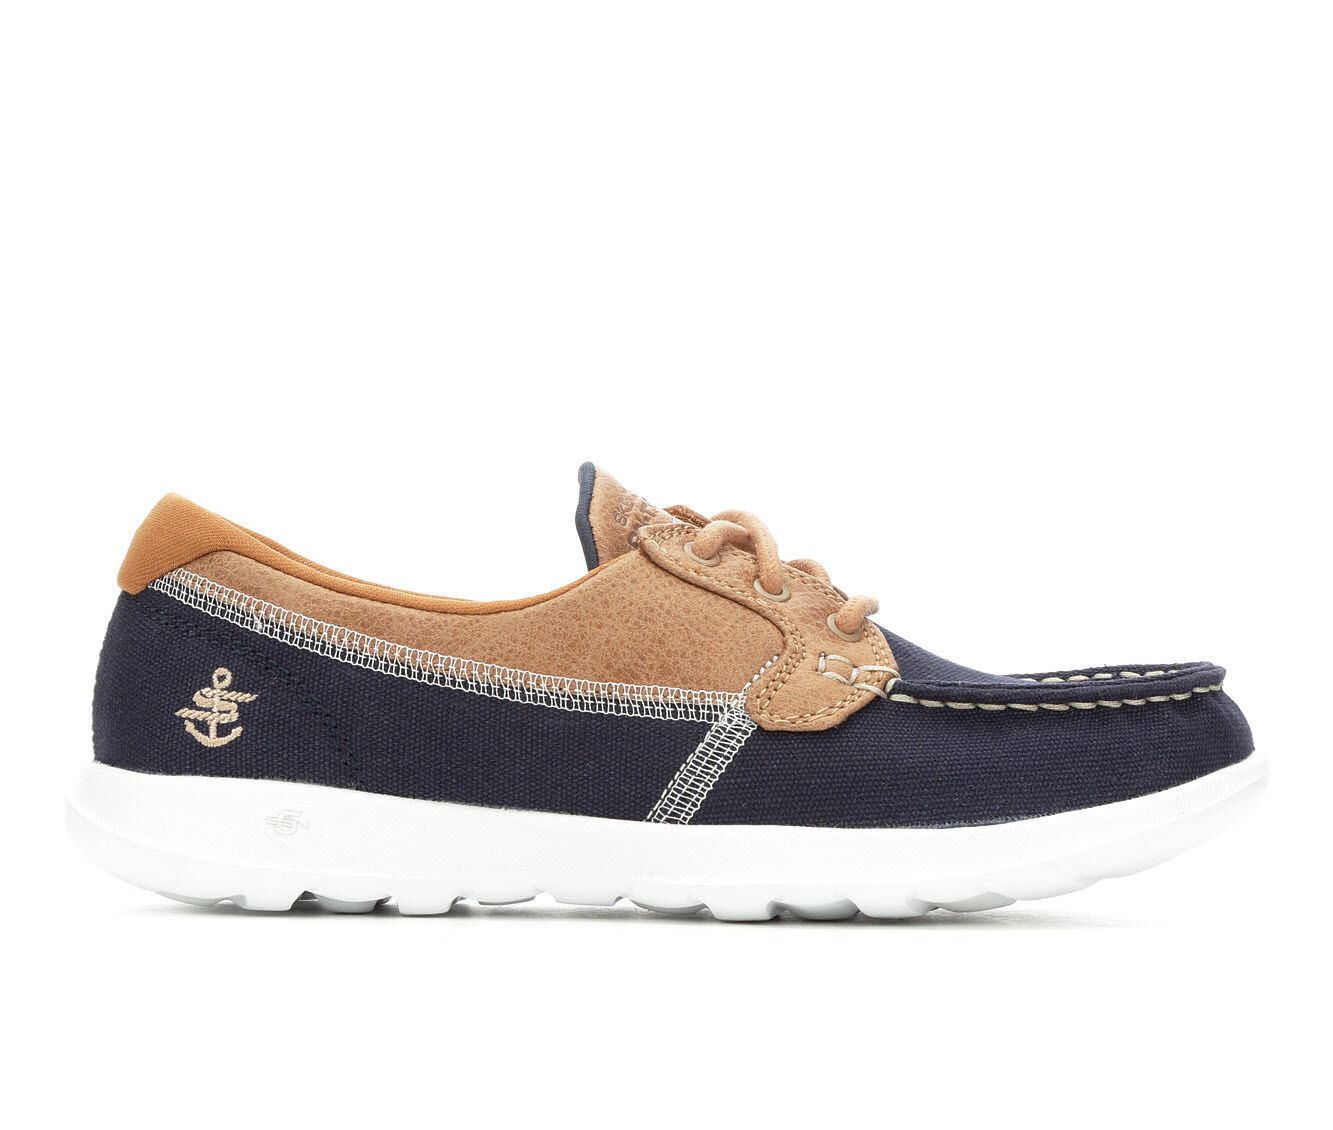 Women's Skechers Go Lite Coral 15430 Boat Shoes Navy